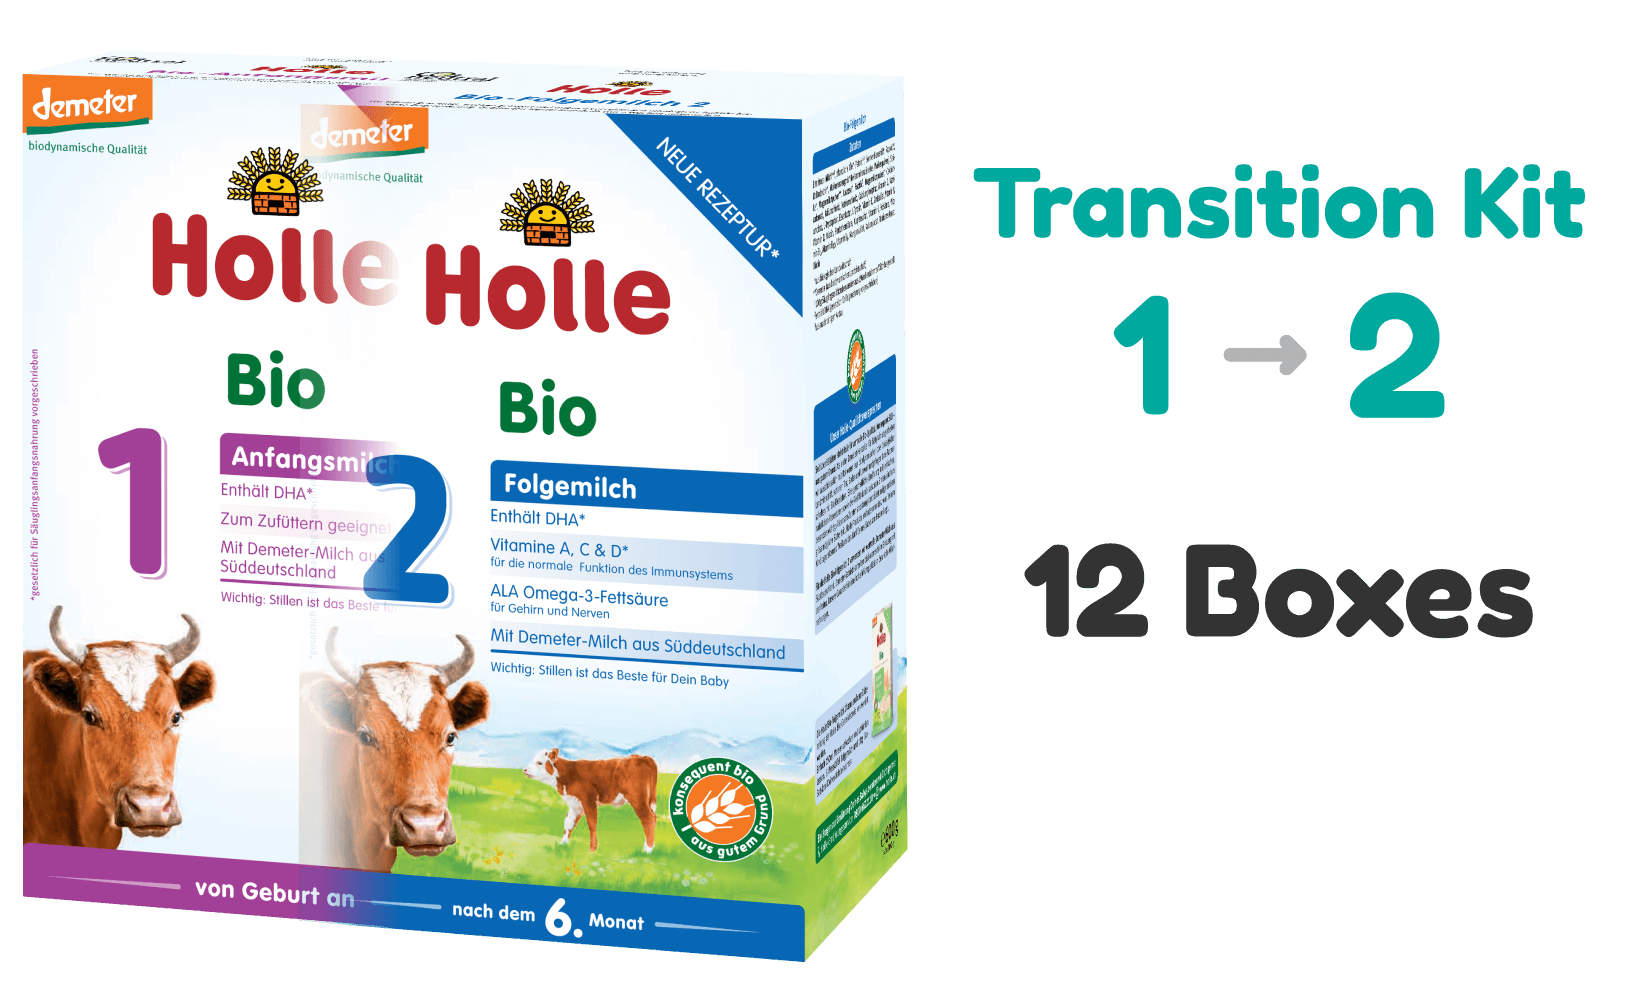 Transition Kit: Holle Cow stage 1 and stage 2